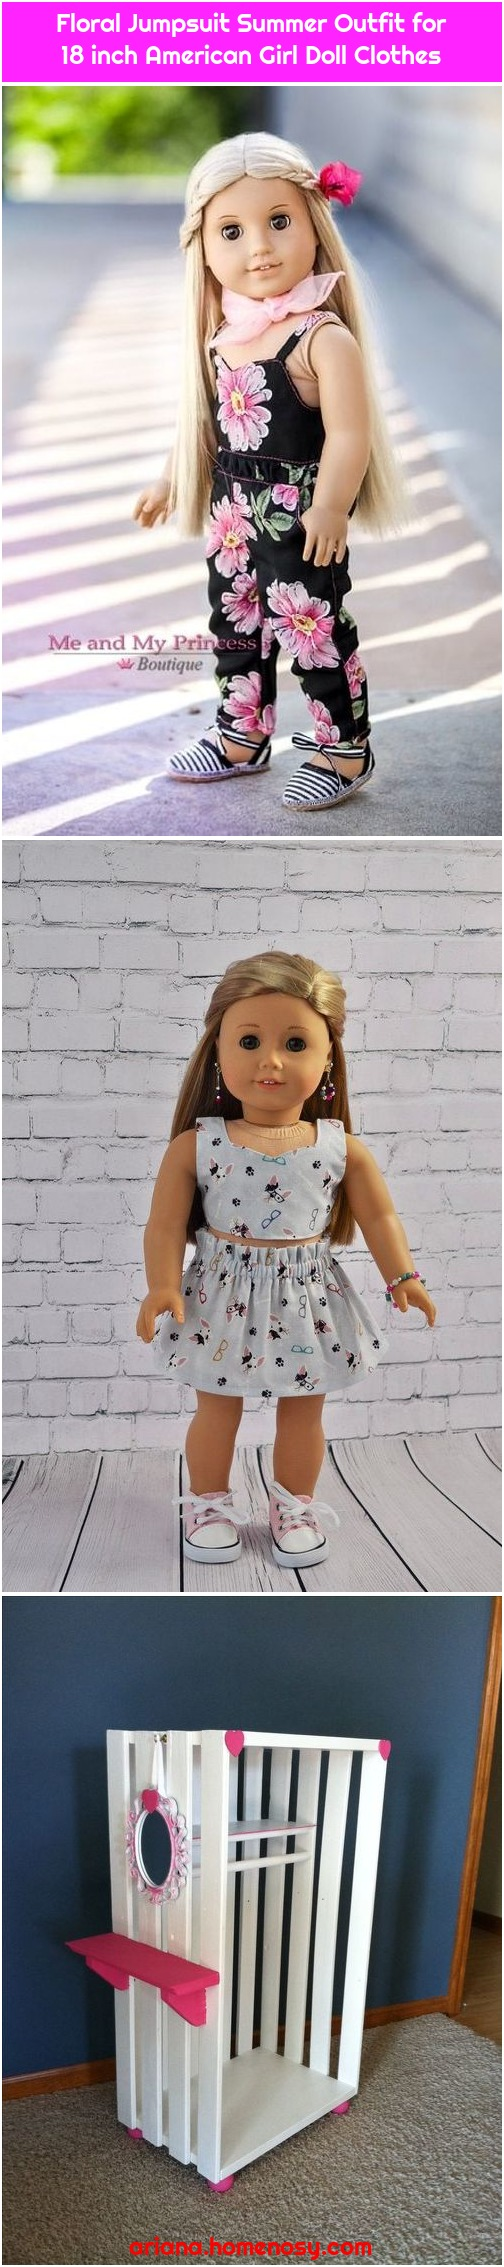 Floral Jumpsuit Summer Outfit for 18 inch American Girl Doll Clothes